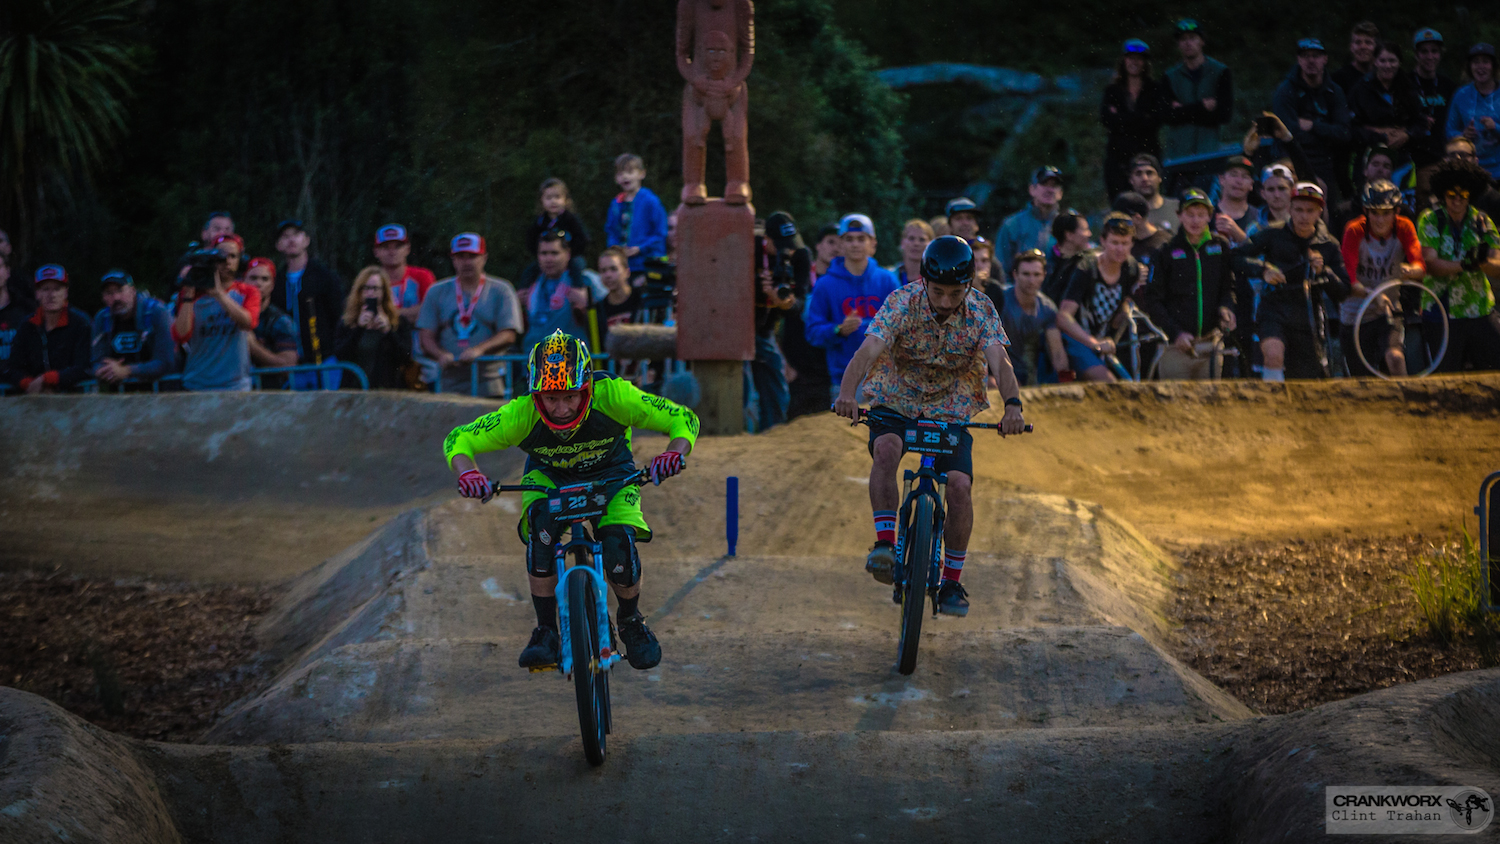 (Photo by clint trahan/Crankworx)